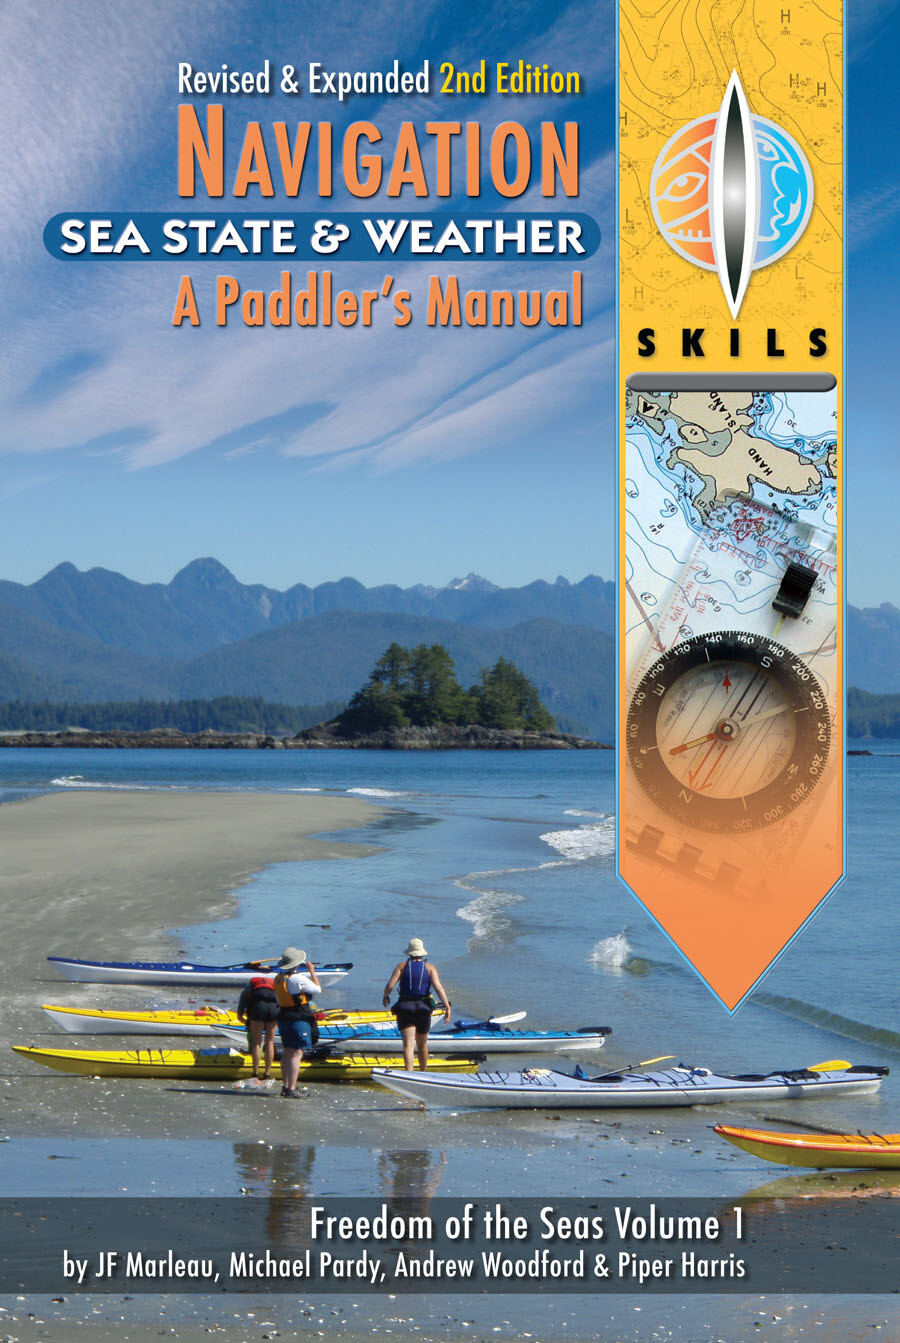 Navigation, Sea State, Weather - A Paddler's Manual. Freedom of the Seas Volume 1. 2020. Second Edition (Ebook-PDF format).